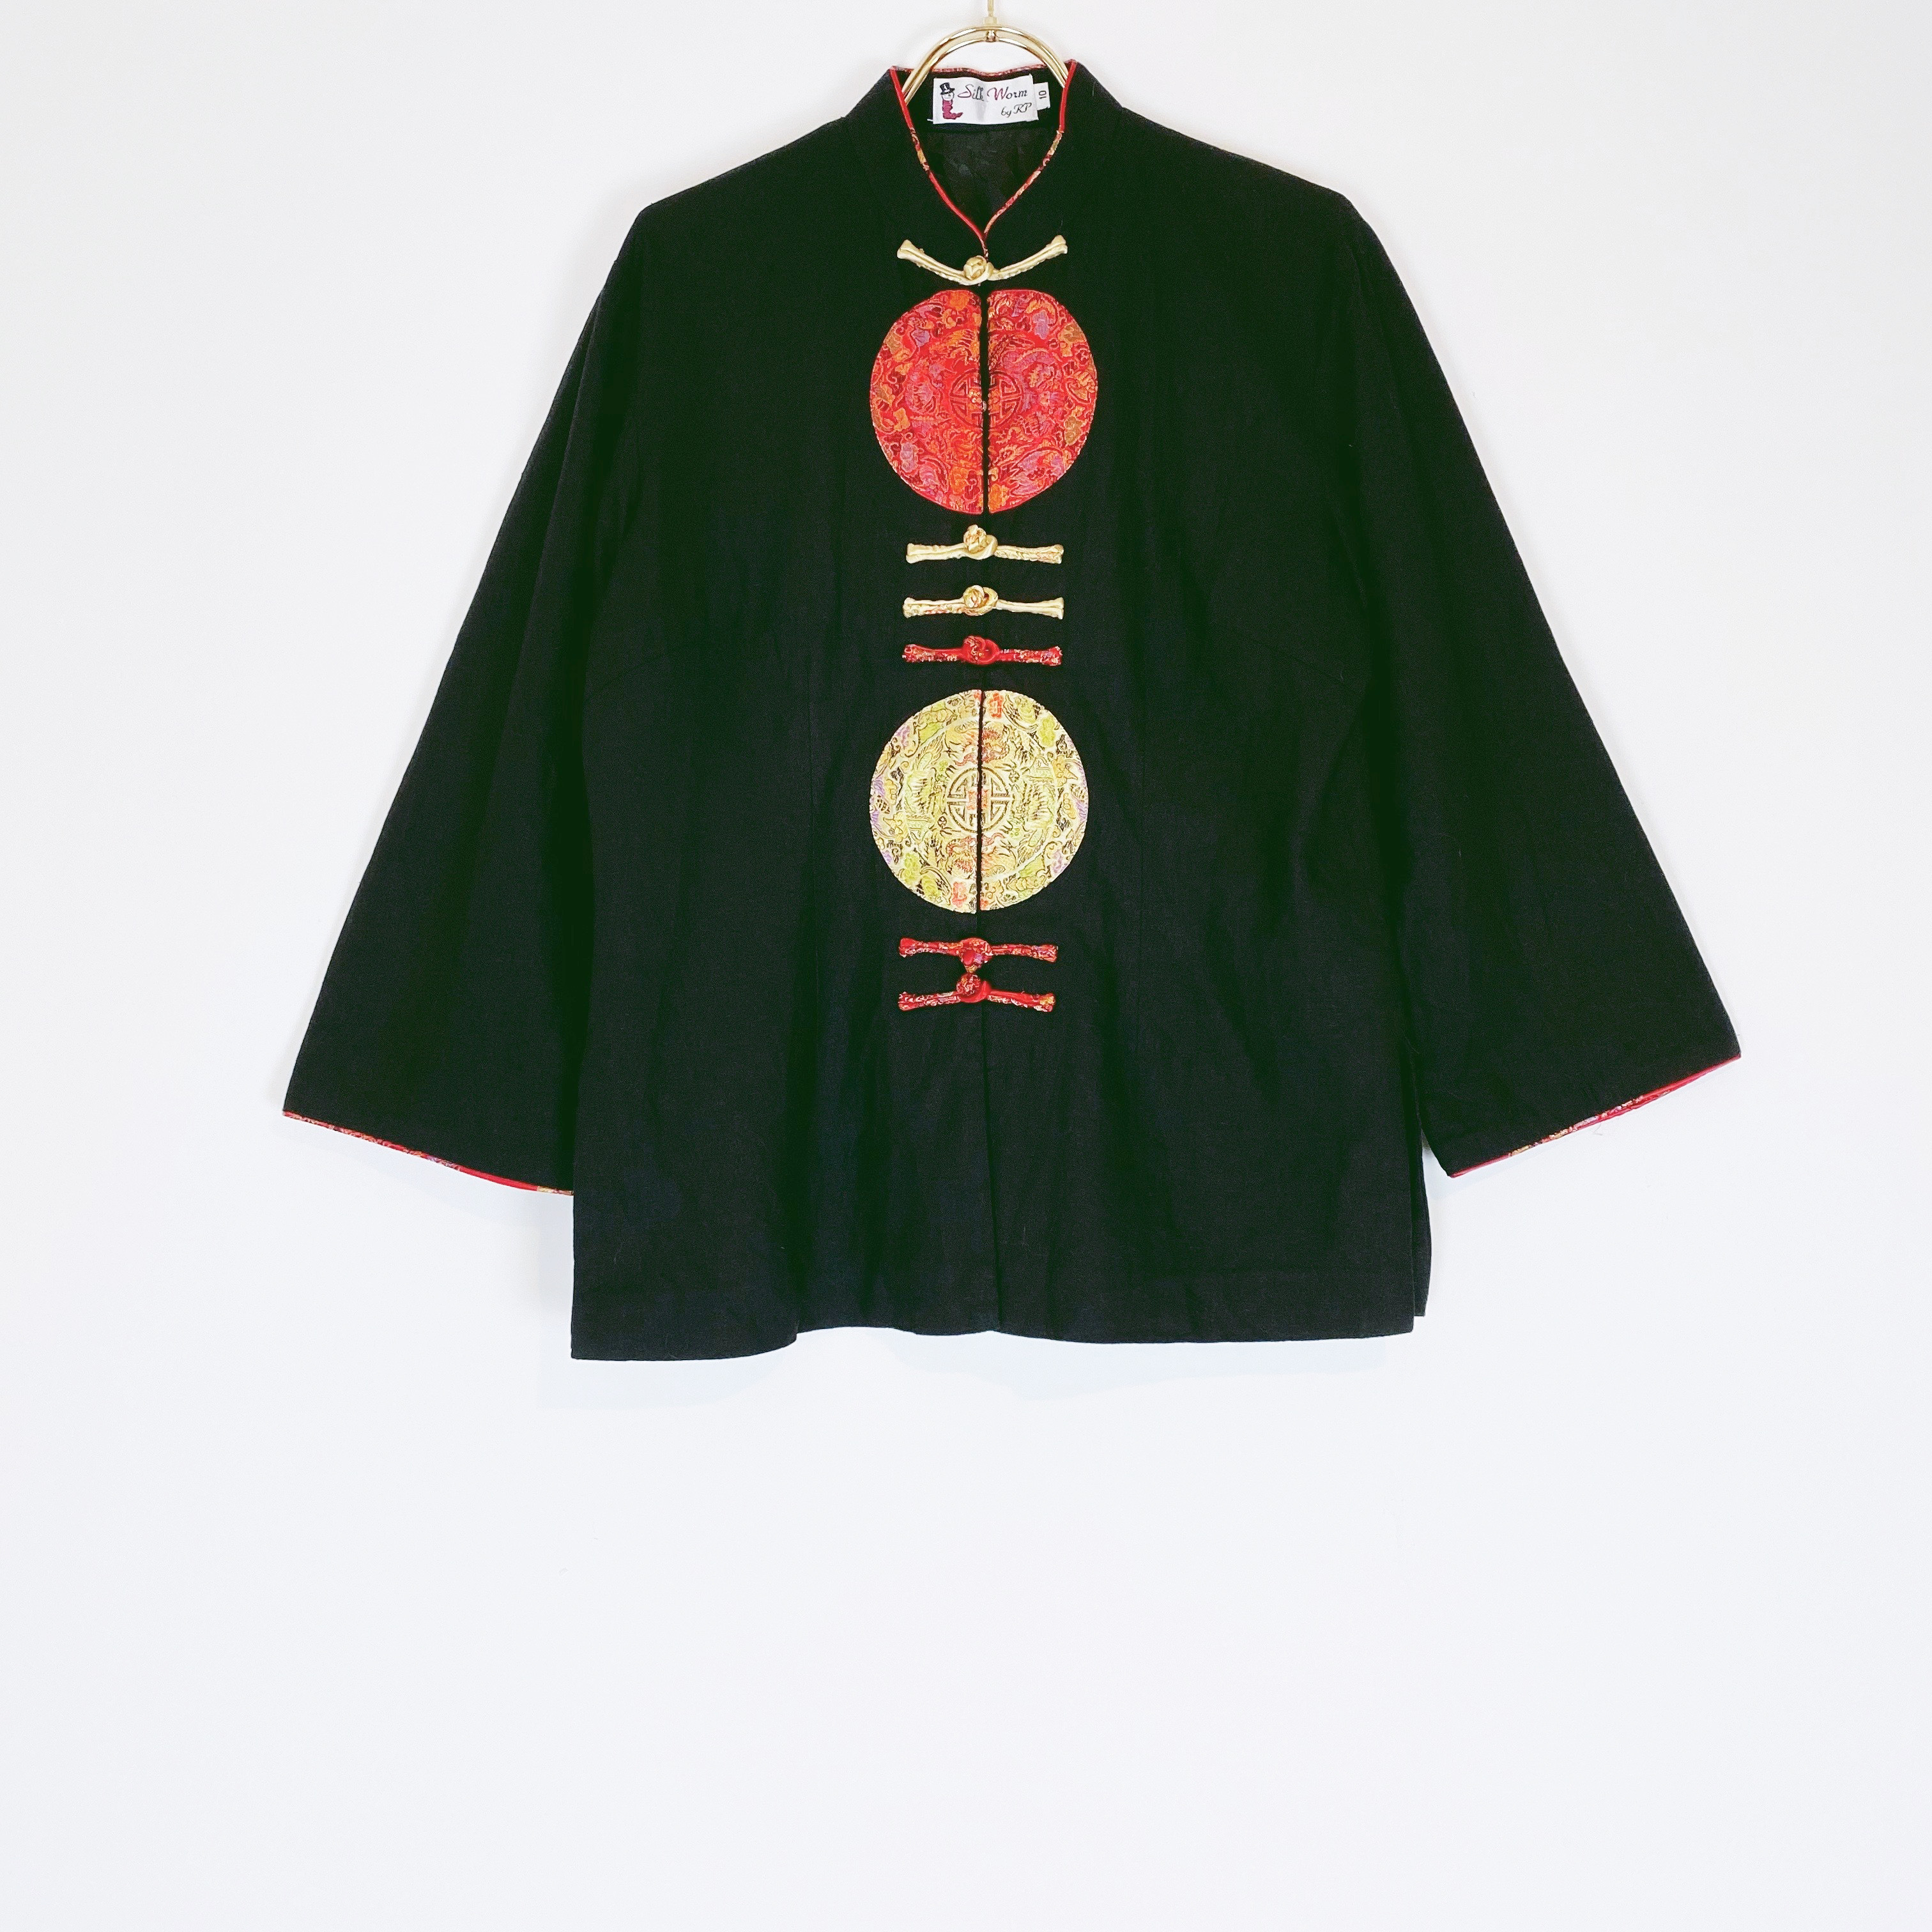 ◼︎90s Chinese style linen jacket from U.S.A.◼︎